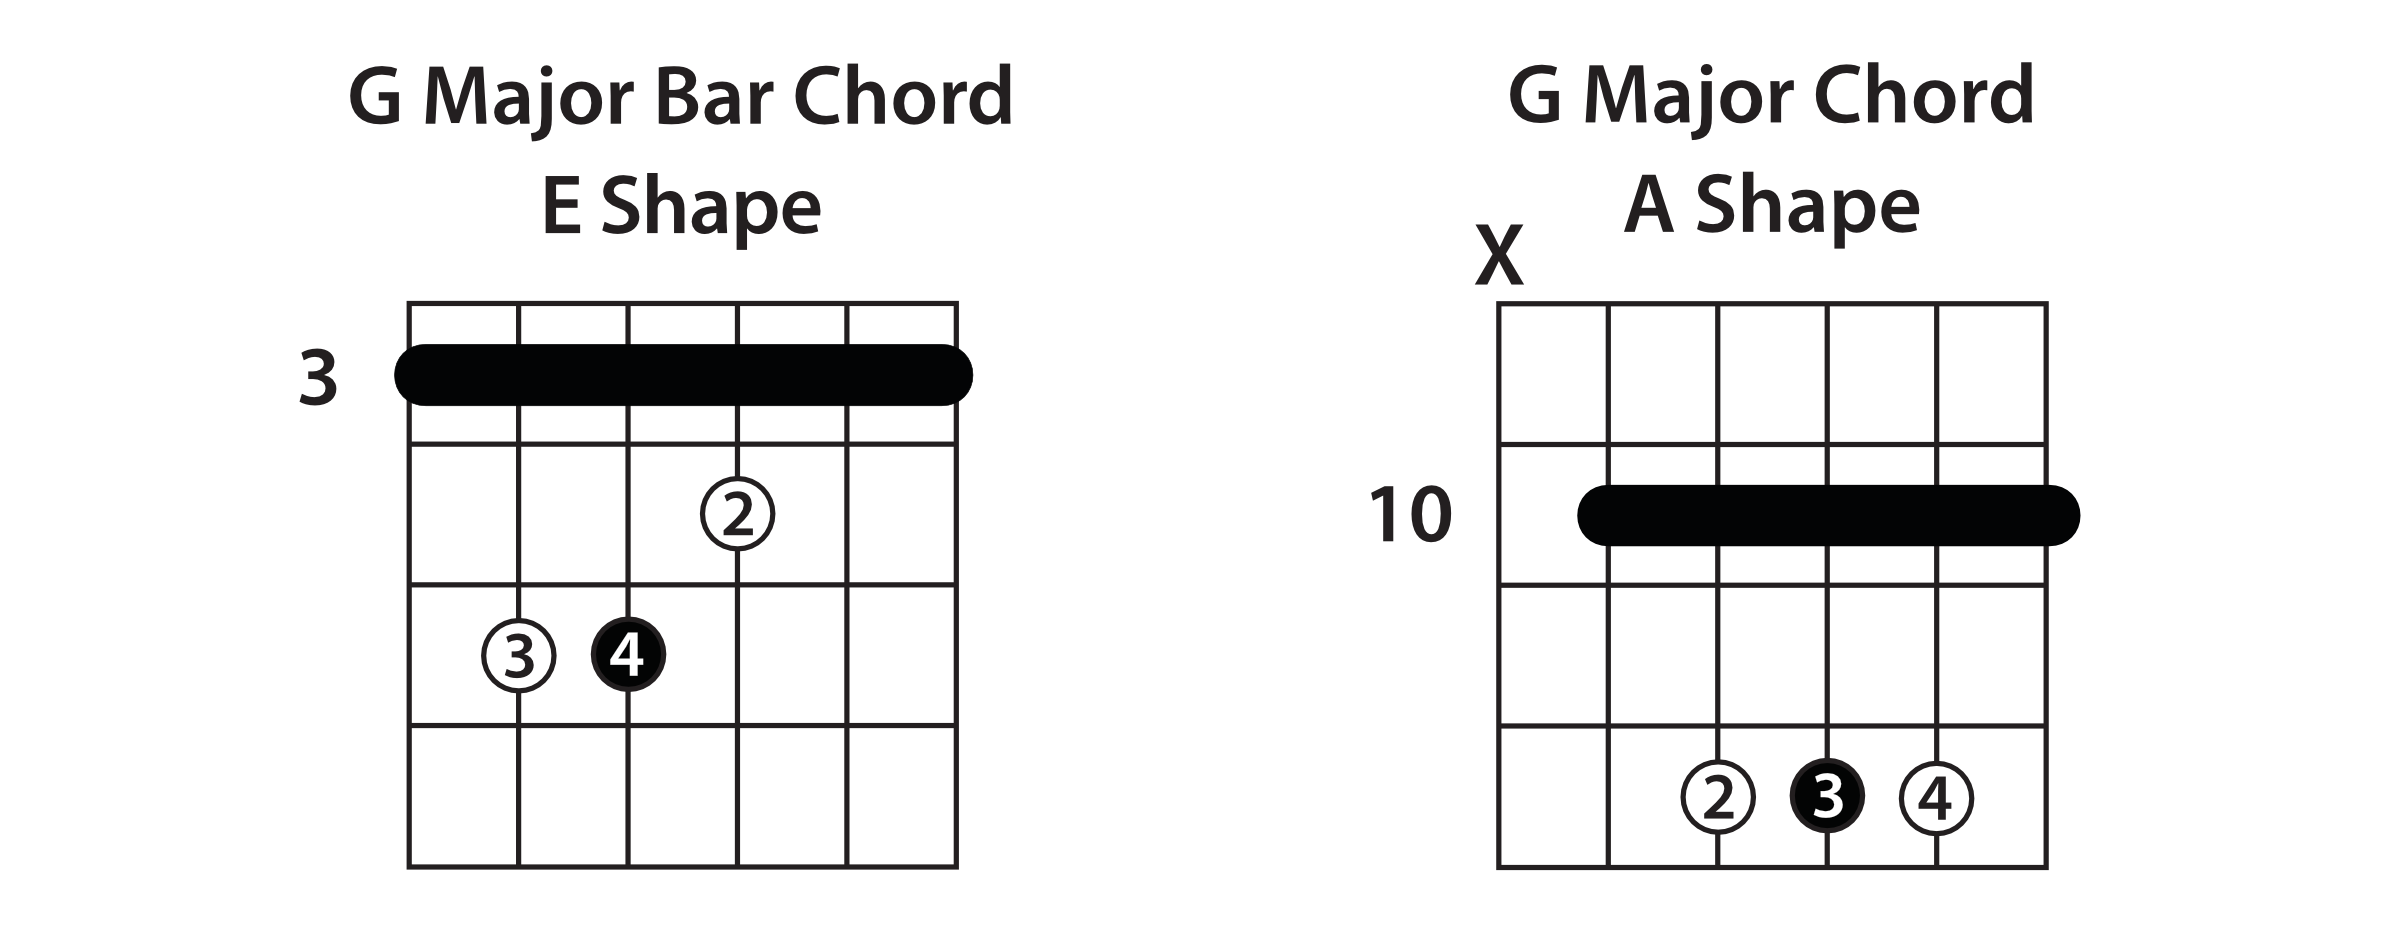 Double Your Fretboard Coverage Guitar Lesson Notes On Neck Diagram Car Tuning Standard Bar Chords